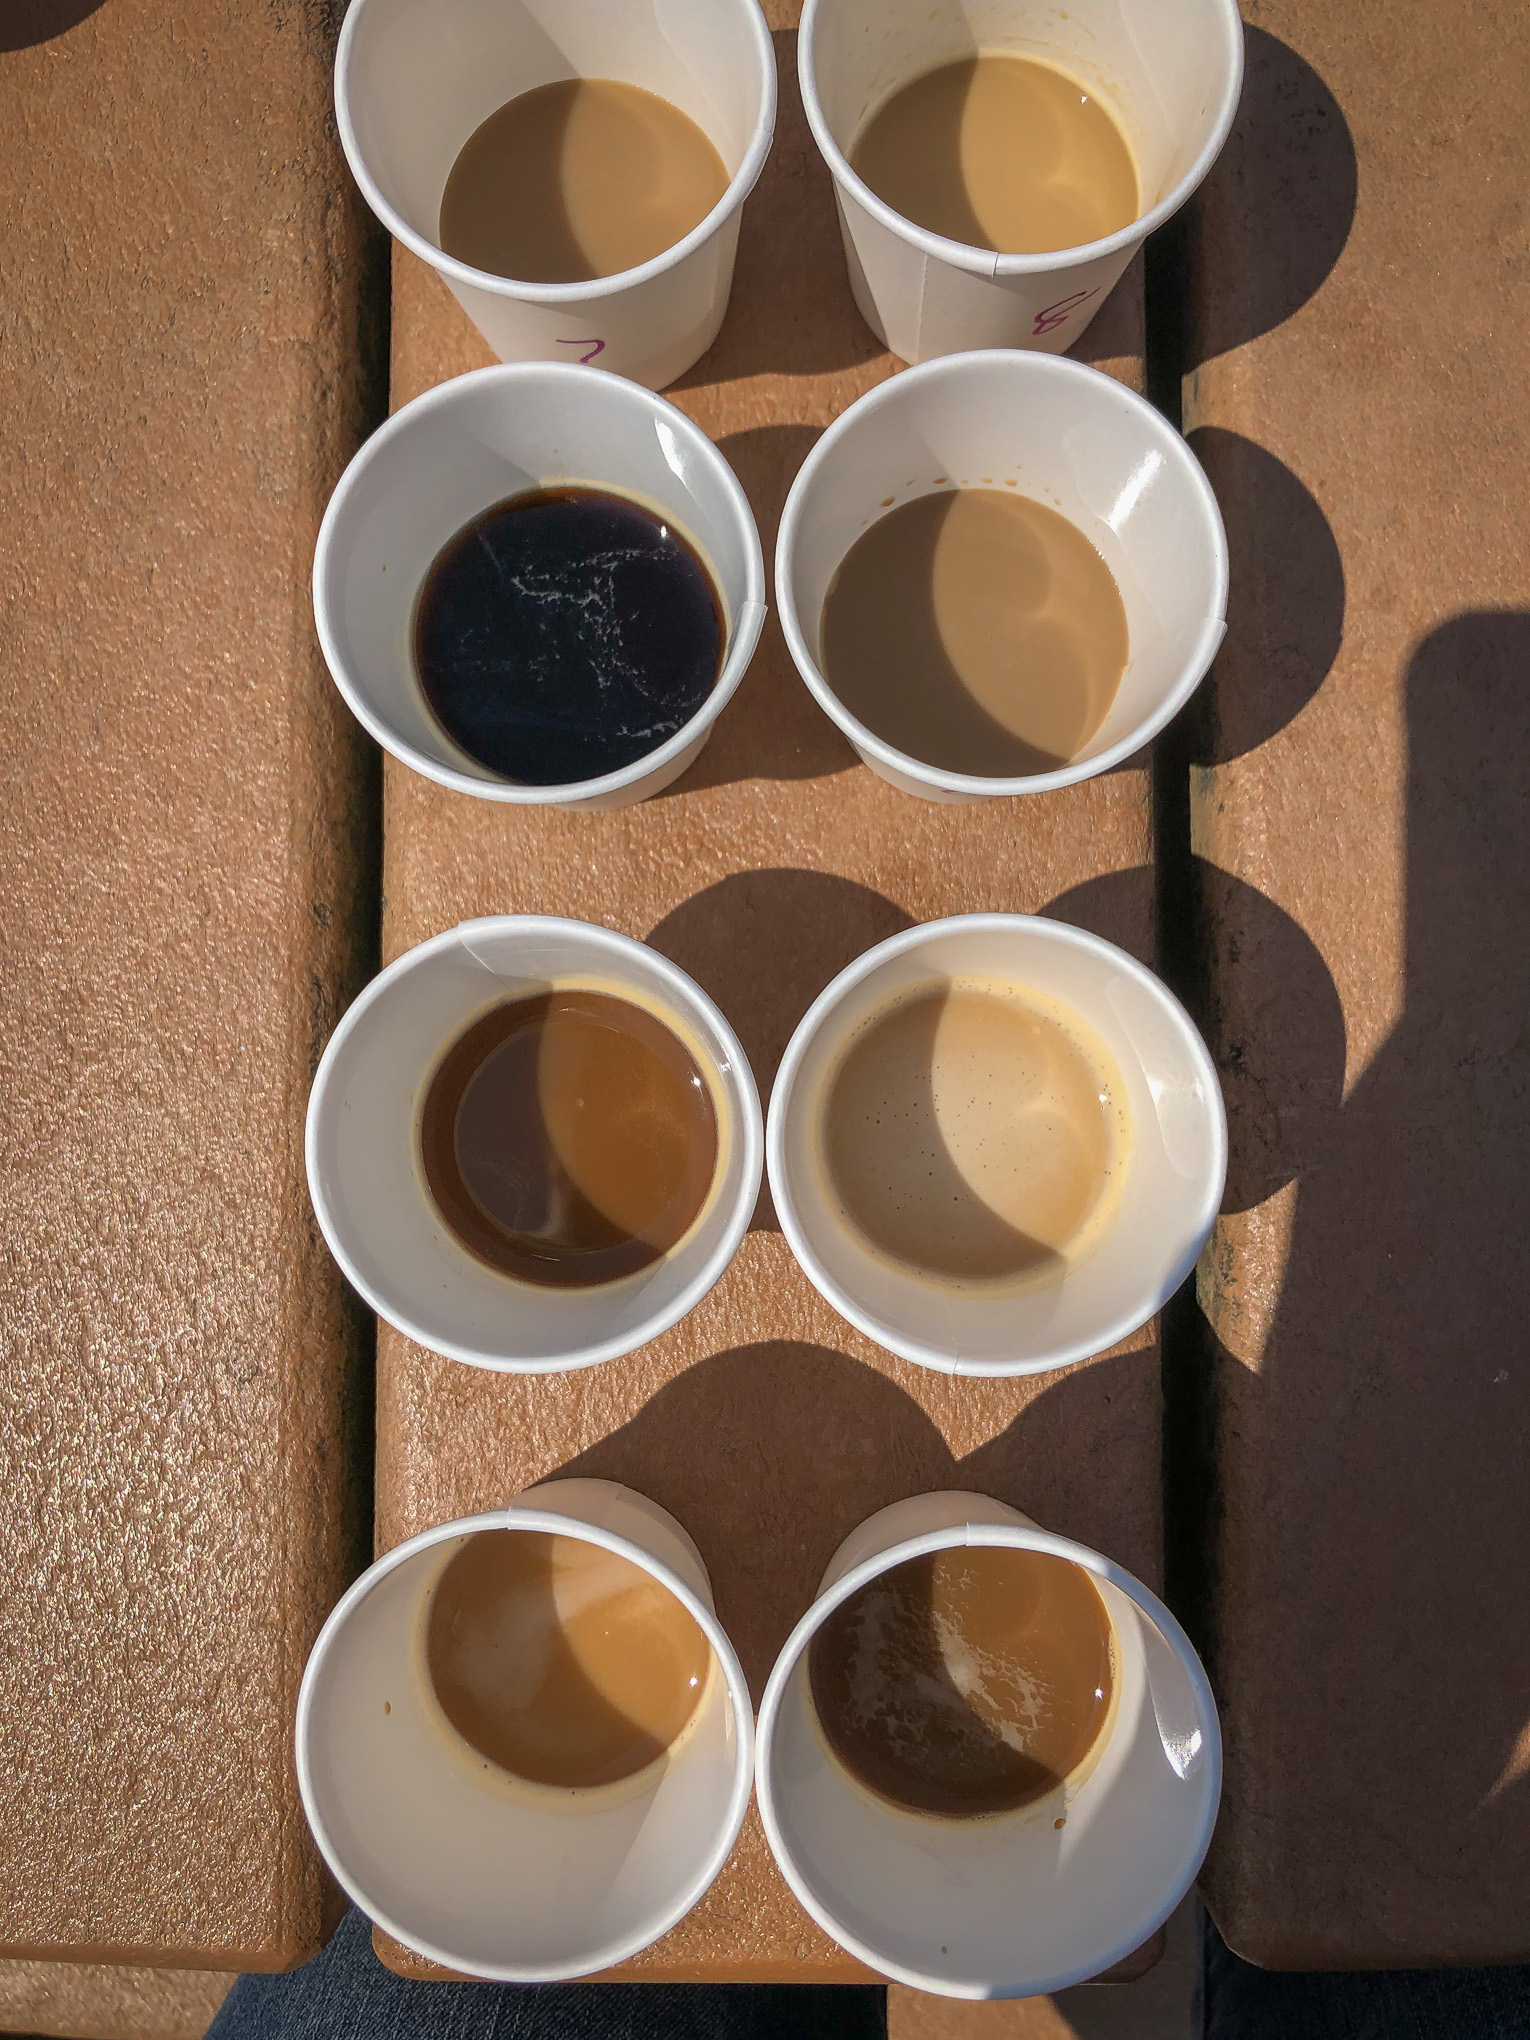 Top down shot of paper cups filled with coffee